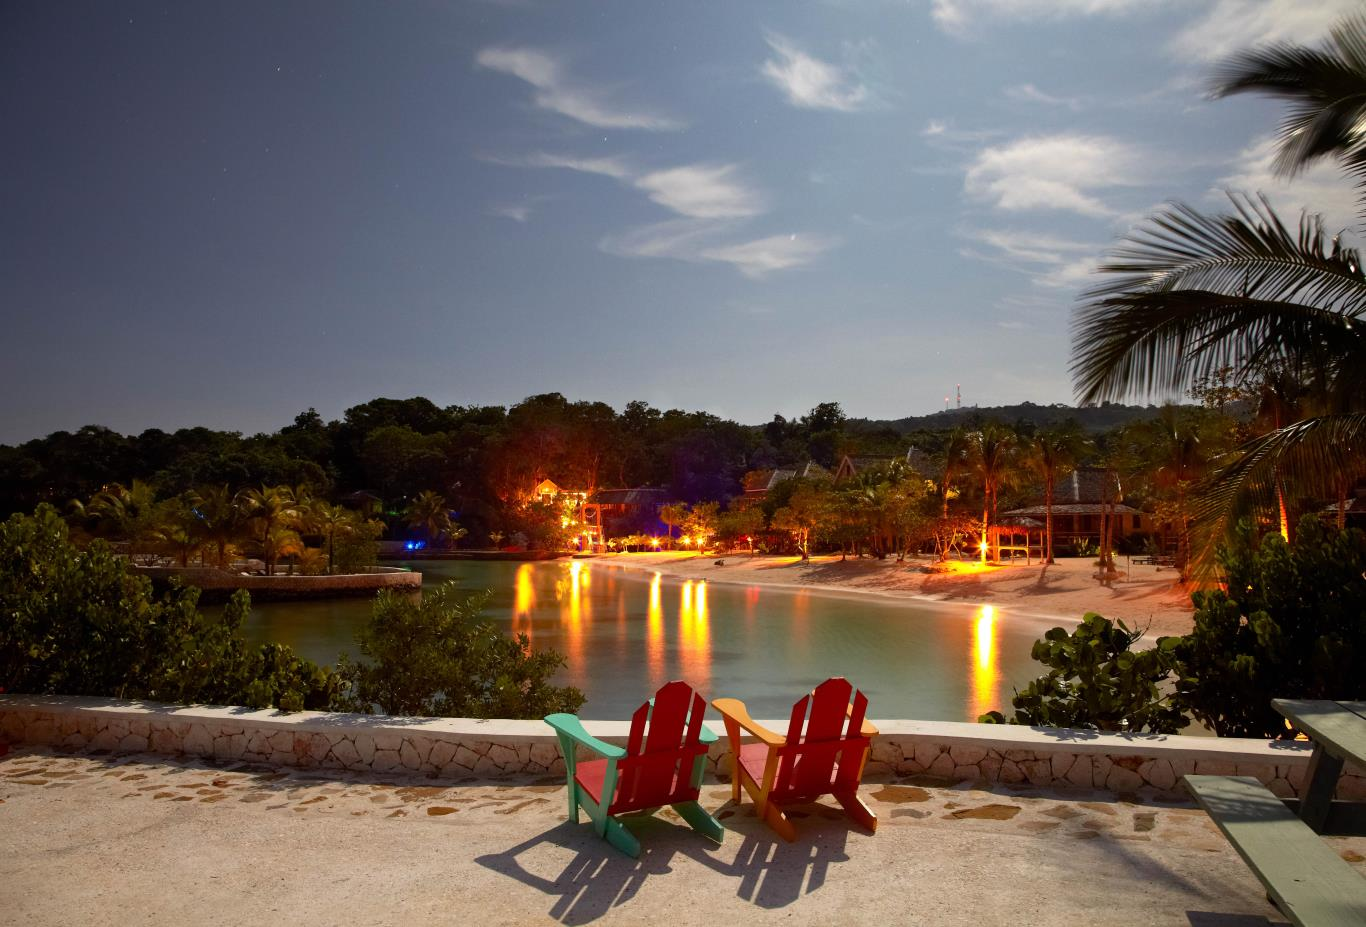 View of the beach and lights in the evening at GoldenEye Boutique Resort in Jamaica.